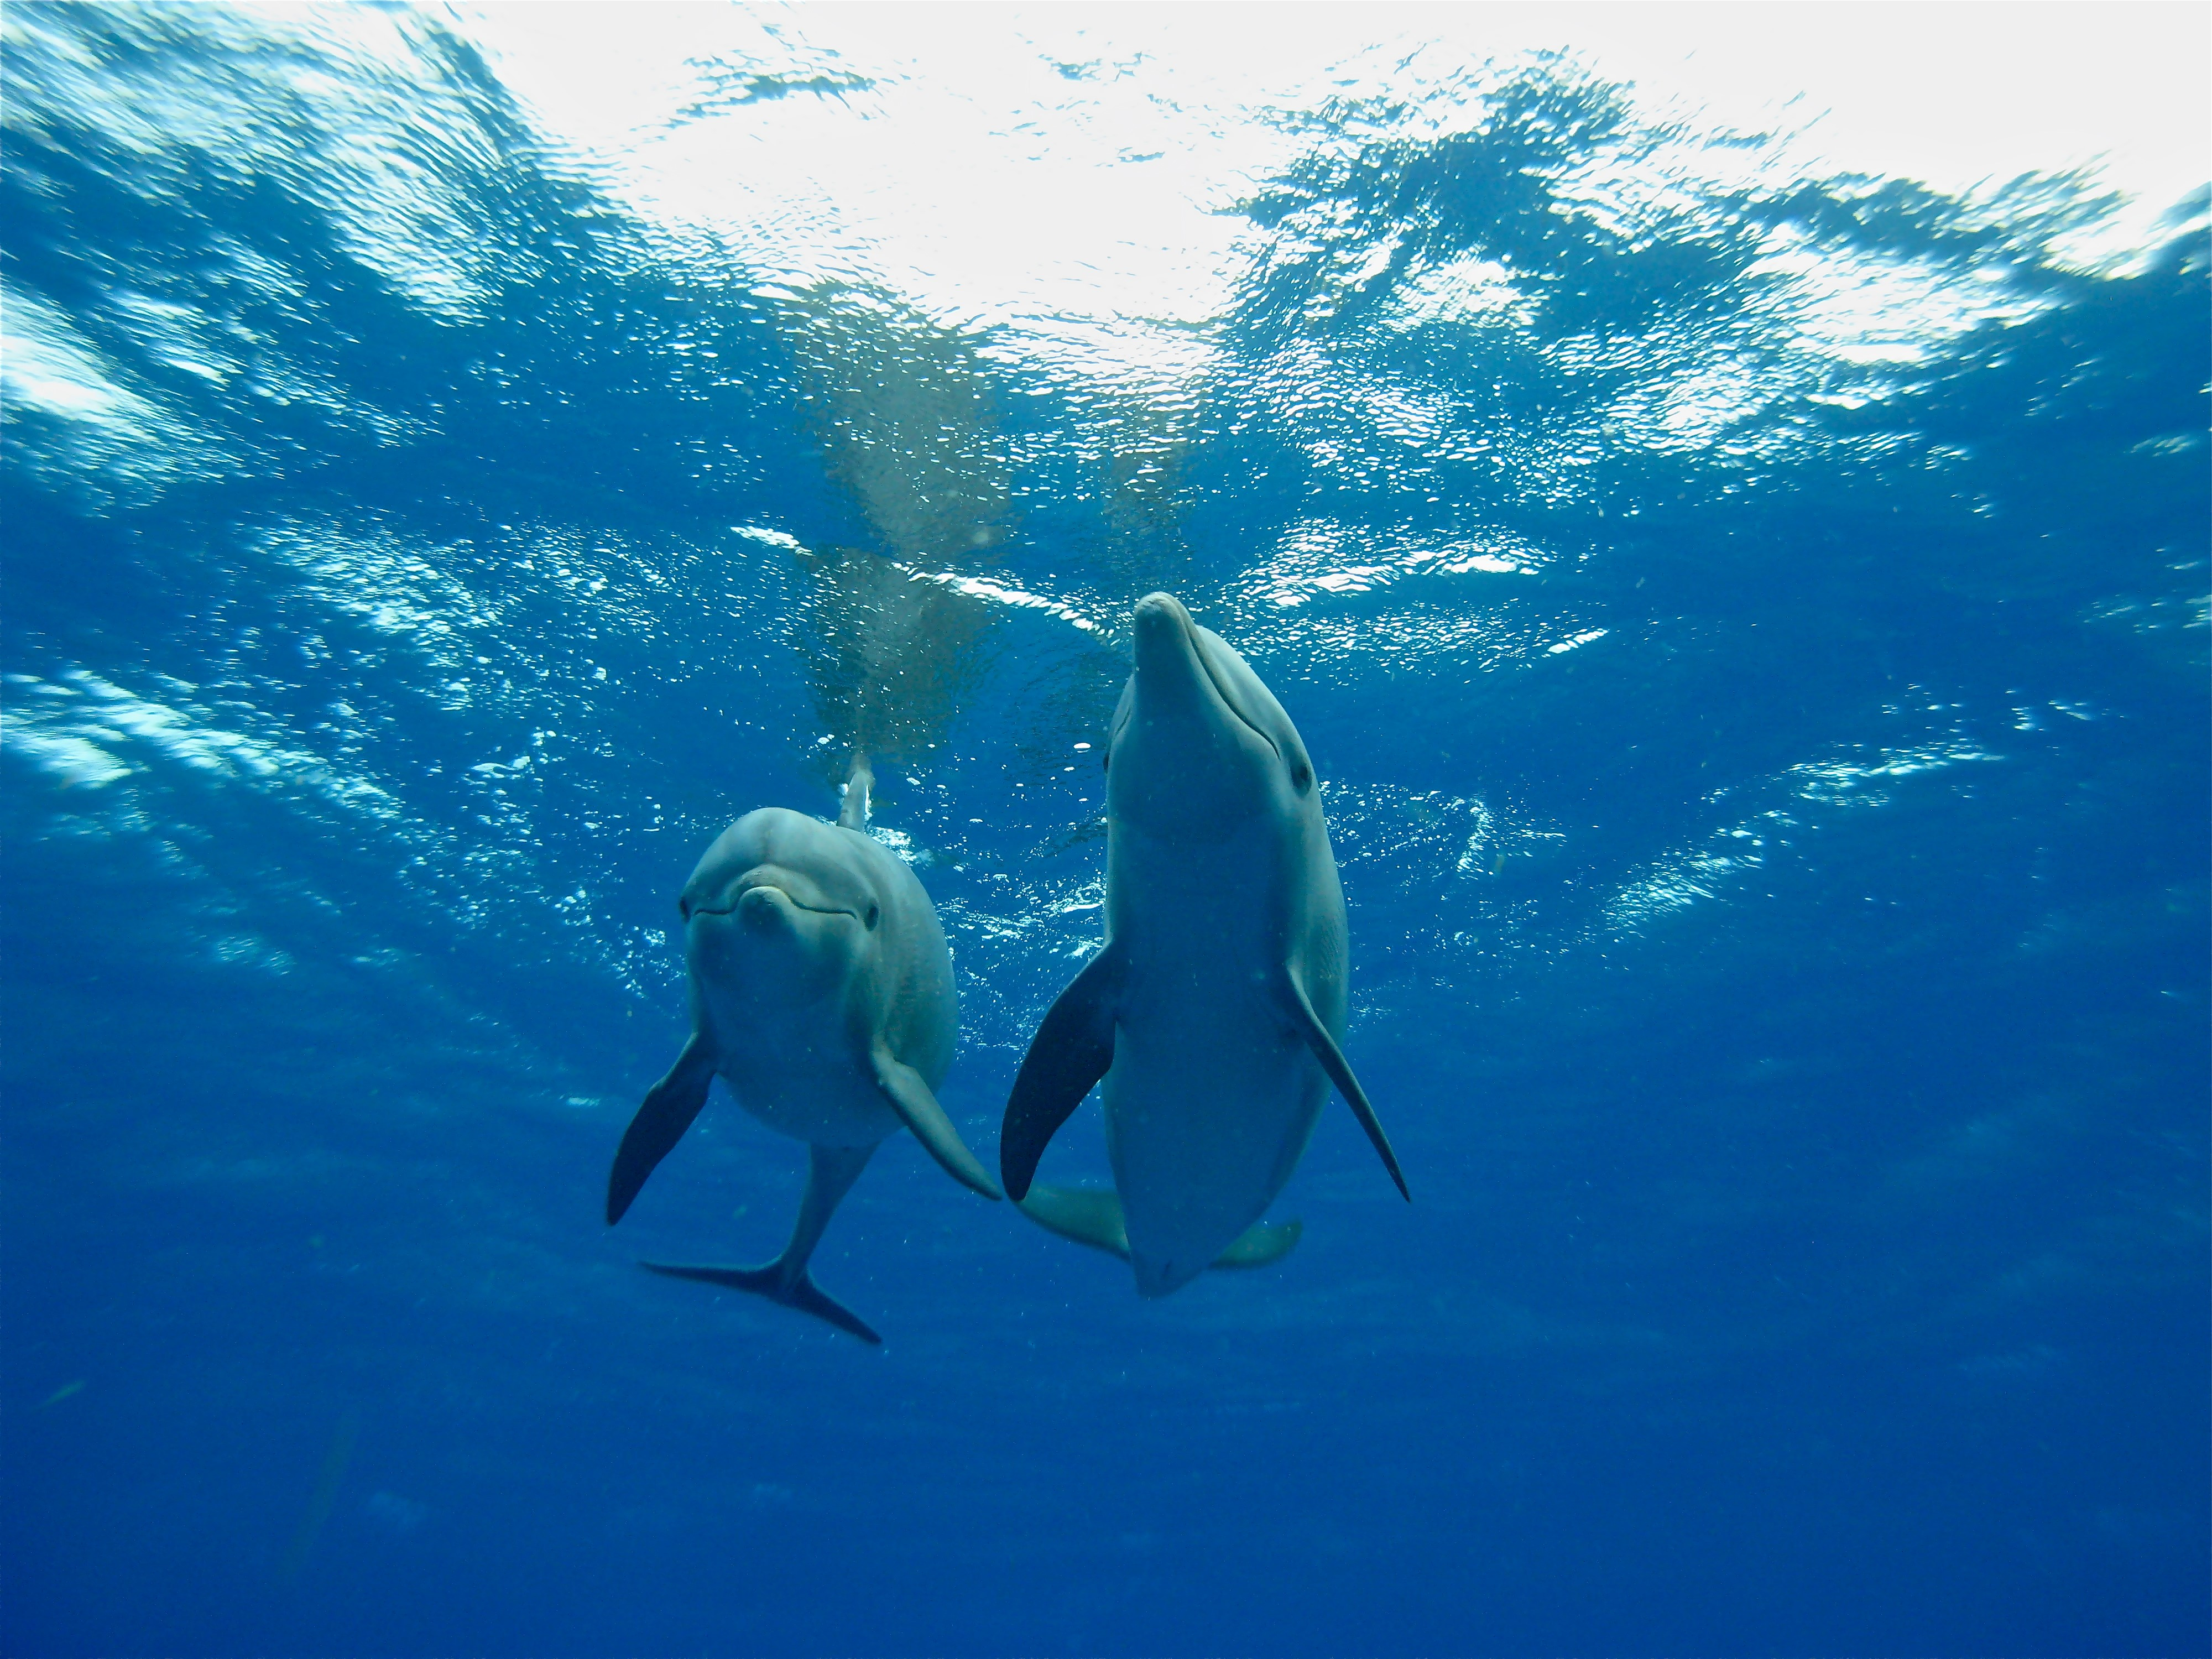 Two dolphins swimming in sea